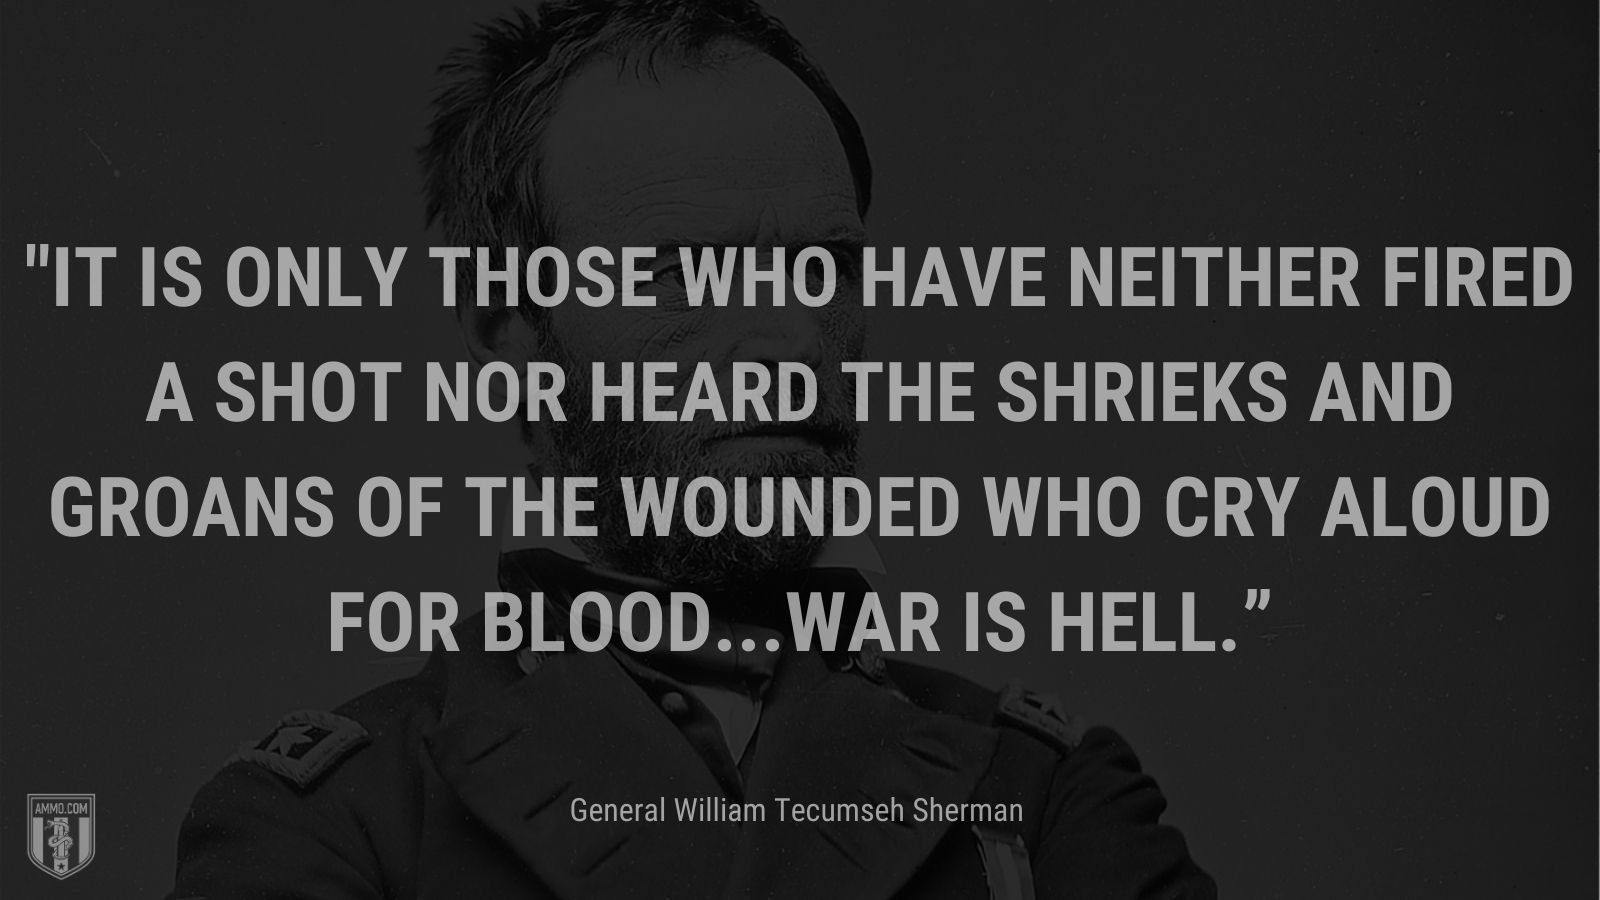 """""""It is only those who have neither fired a shot nor heard the shrieks and groans of the wounded who cry aloud for blood...War is hell."""" - General William Tecumseh Sherman"""